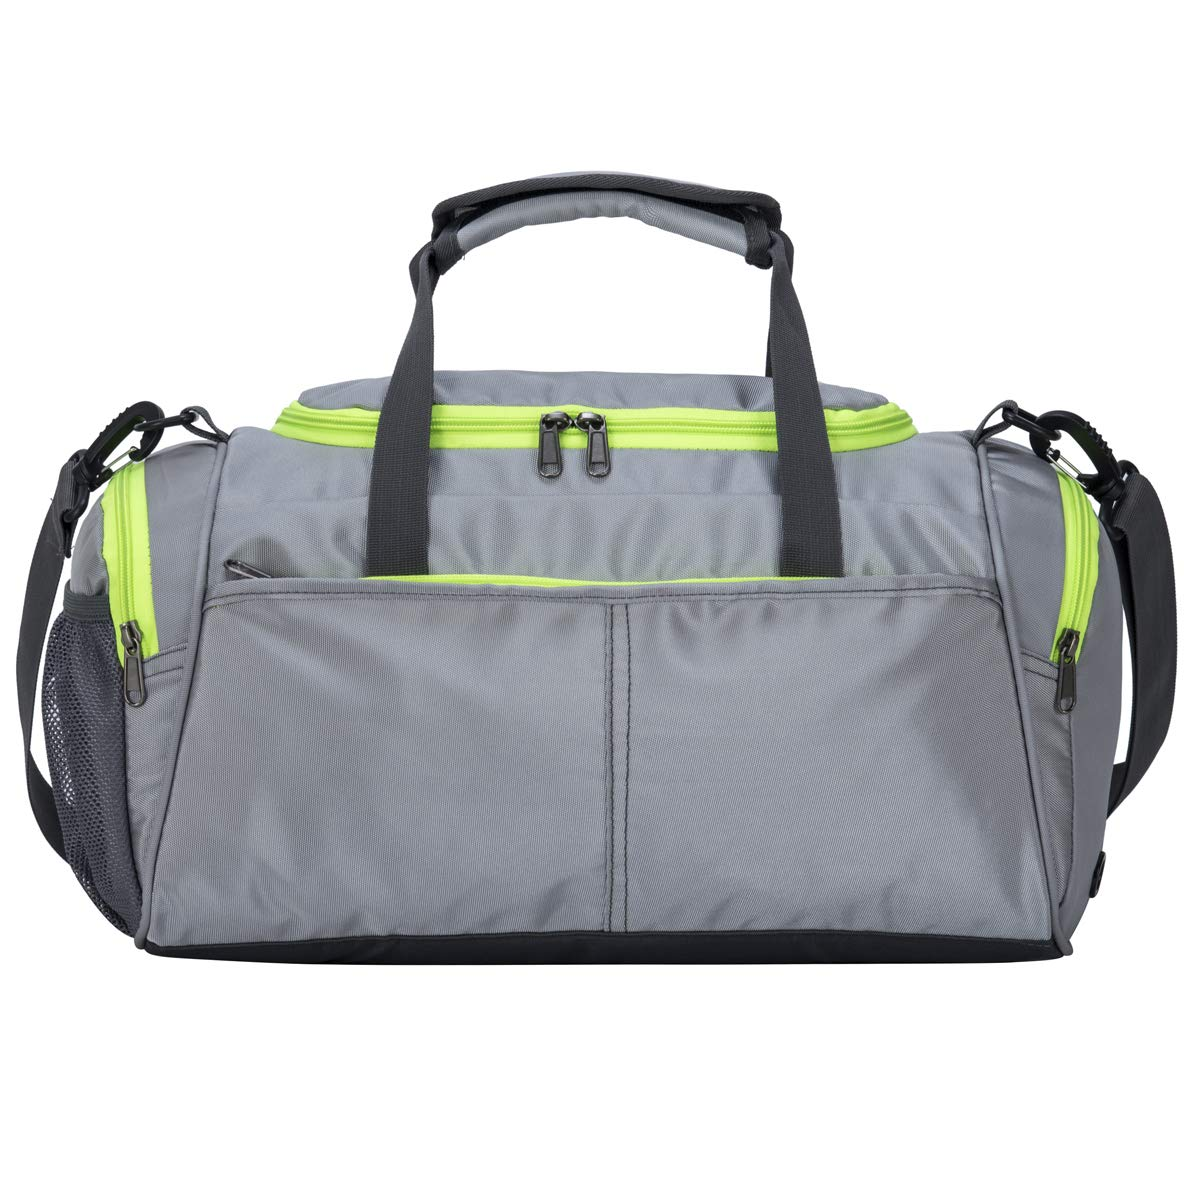 Grey Kuston Small Sports Gym Bag Duffel Bag Mini Travel Duffel with shoes Compartment for Men&Women